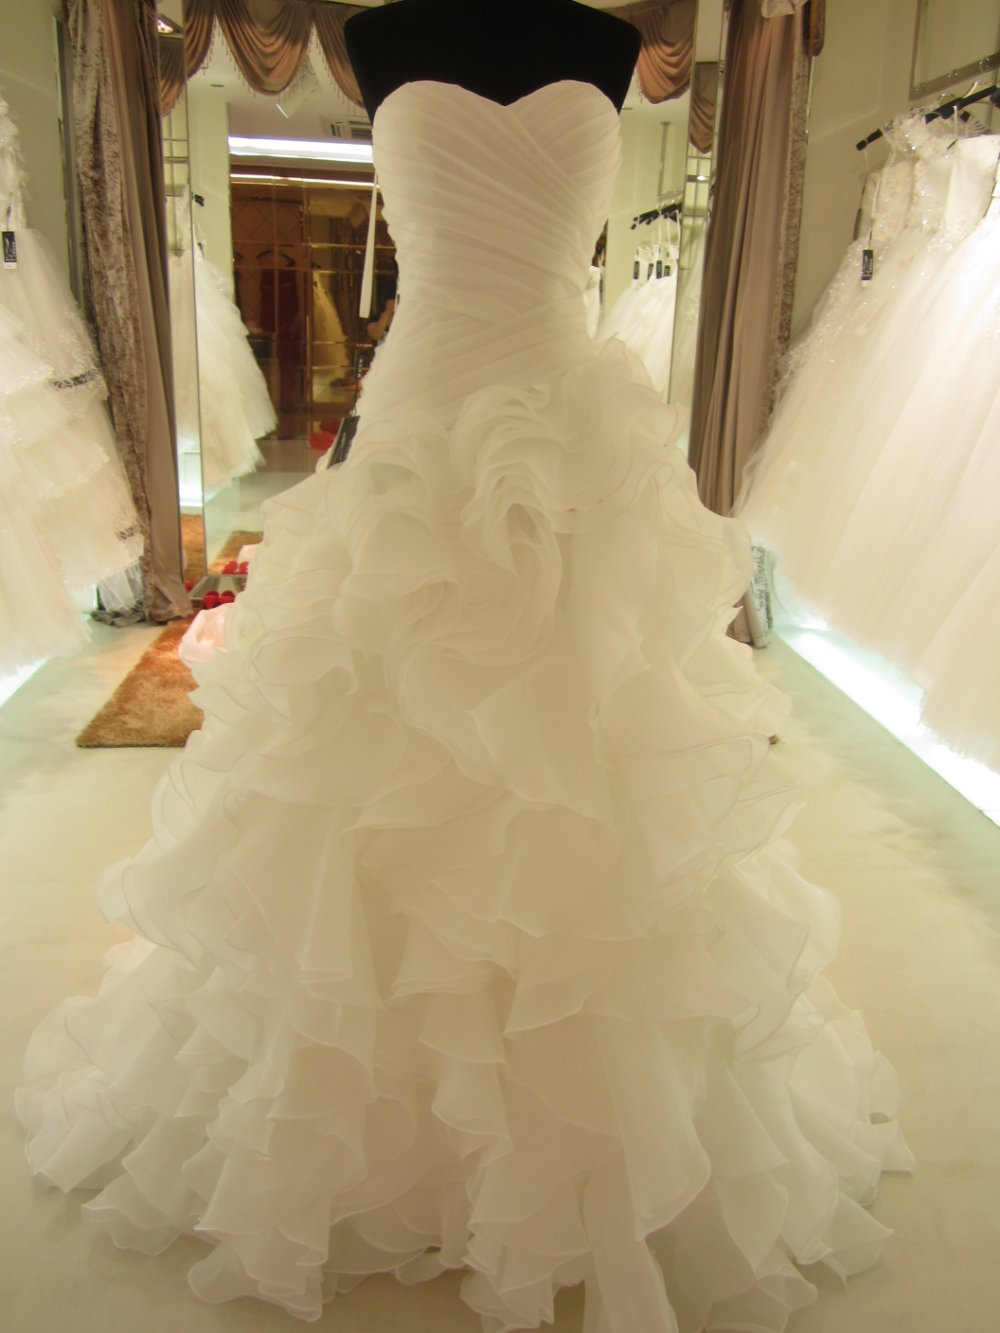 2014 Hot Sale Real Picture Organza Ruffle Wedding Dress/Bridal Gown sl 7070-in Wedding Dresses from Apparel & Accessories on Aliexpress.com